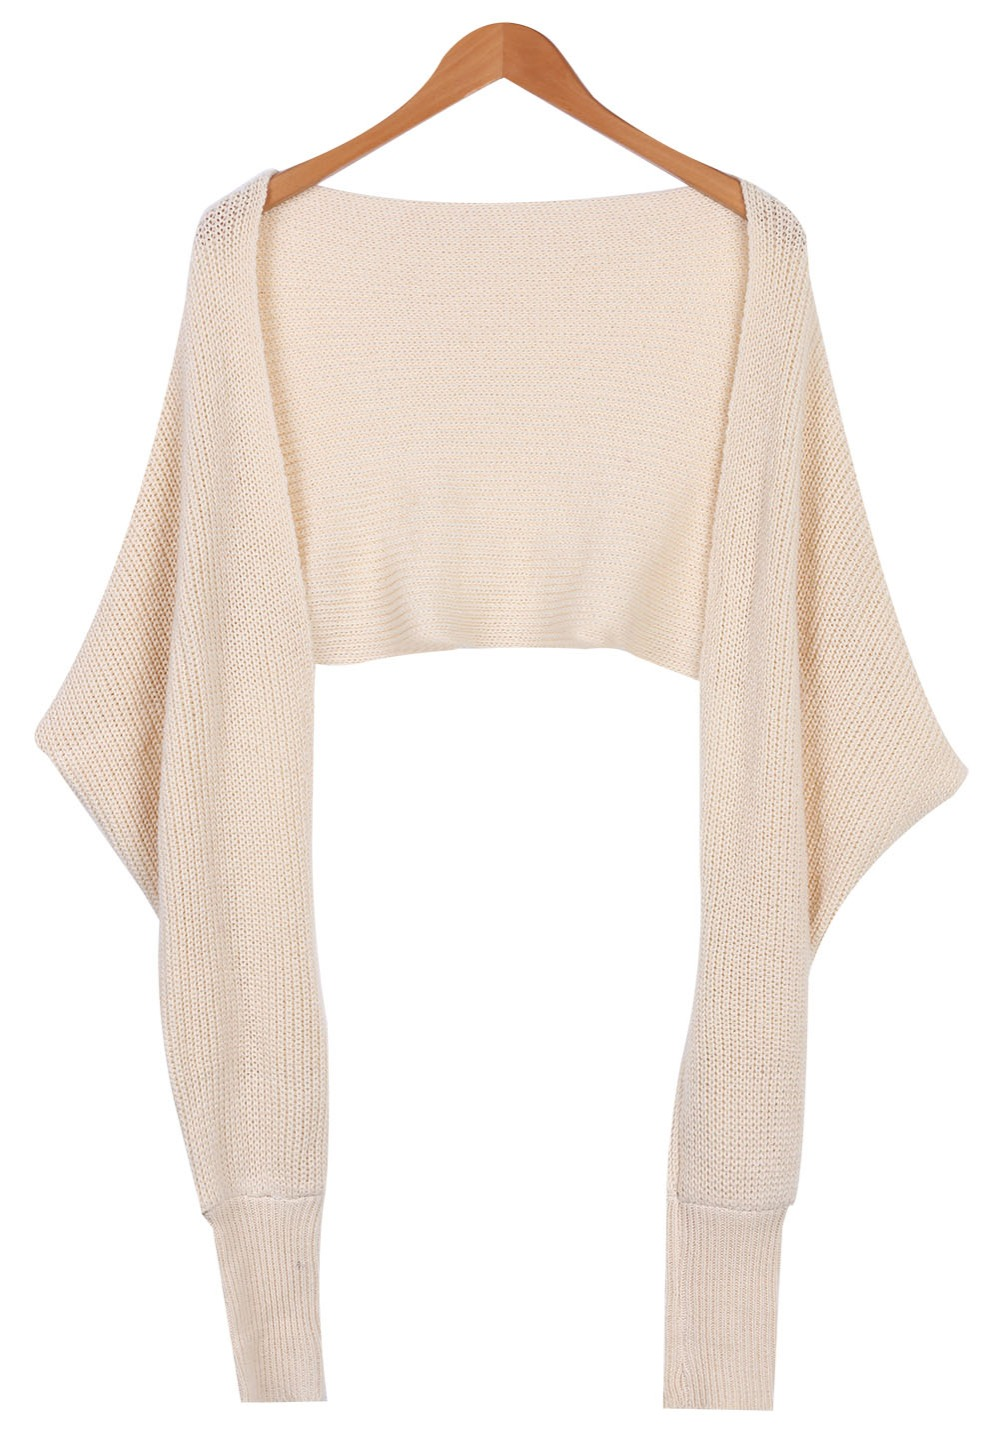 Winter-New-Fashion-Womens-Long-Sleeve-V-neck-Oversized-Loose-Knitted-Sweater-Elegant-Criss-Cross-Short (1)